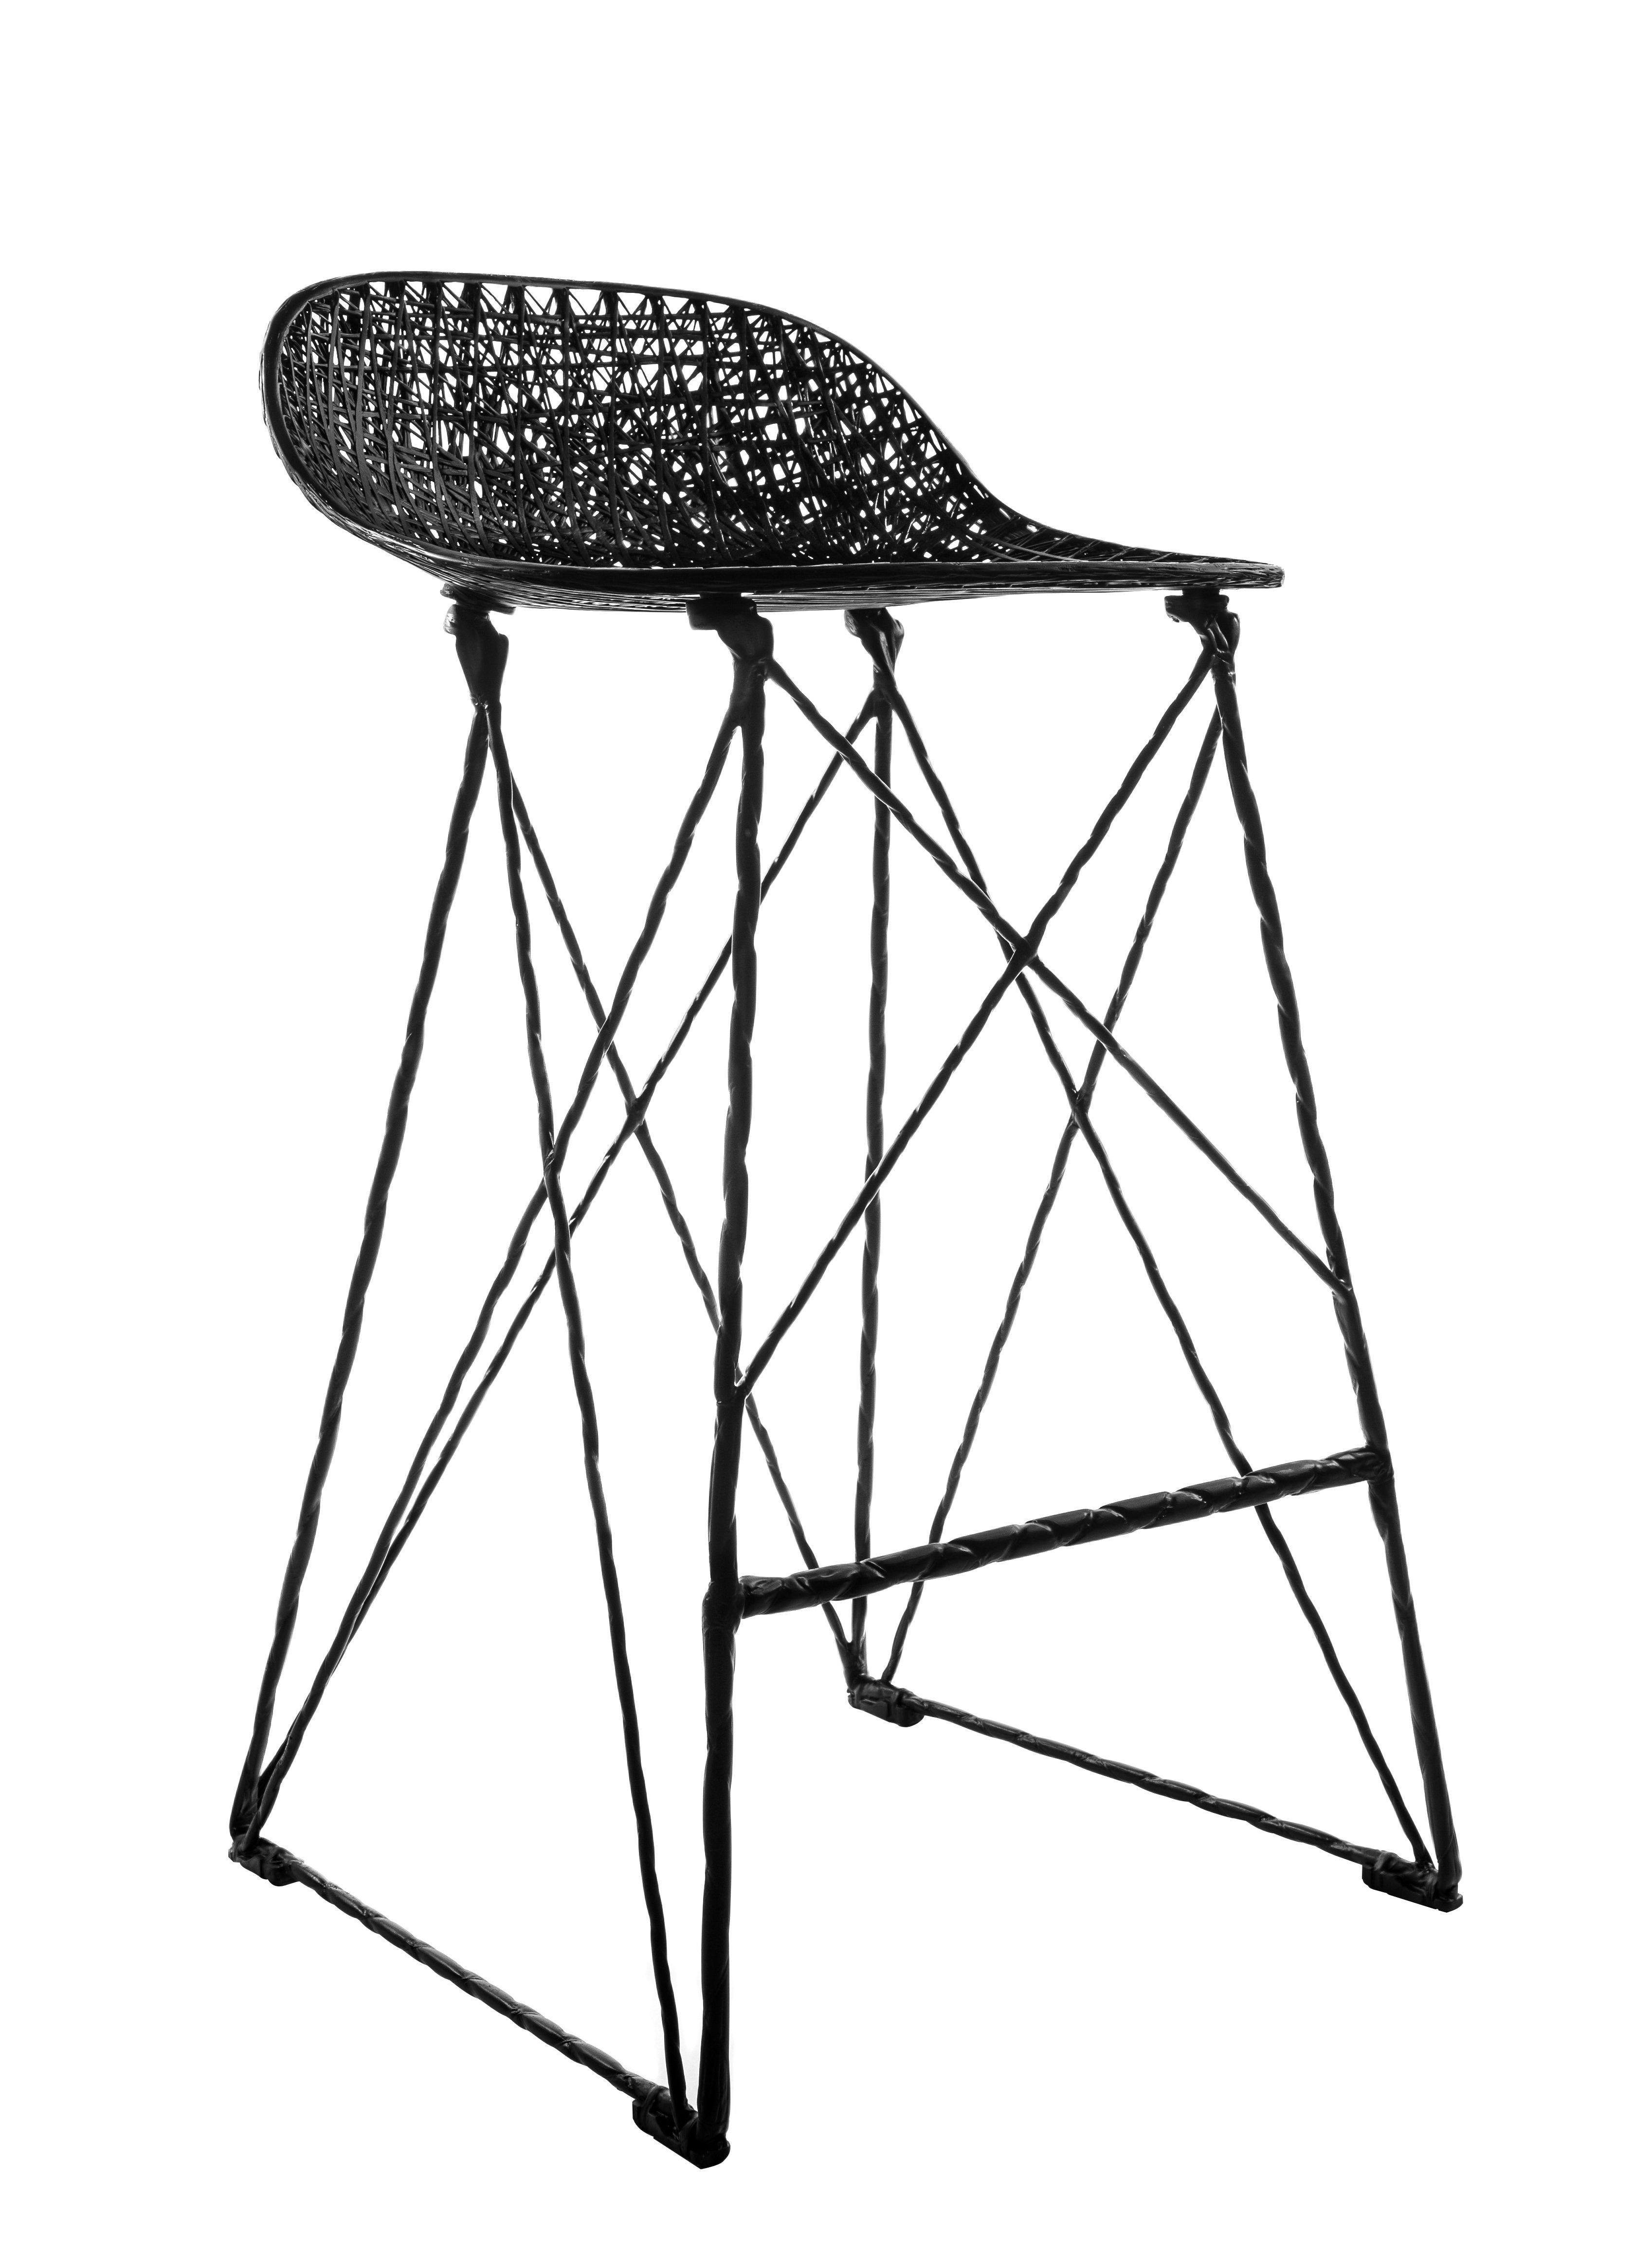 tabouret haut carbon outdoor h 66 cm fibre de carbone. Black Bedroom Furniture Sets. Home Design Ideas